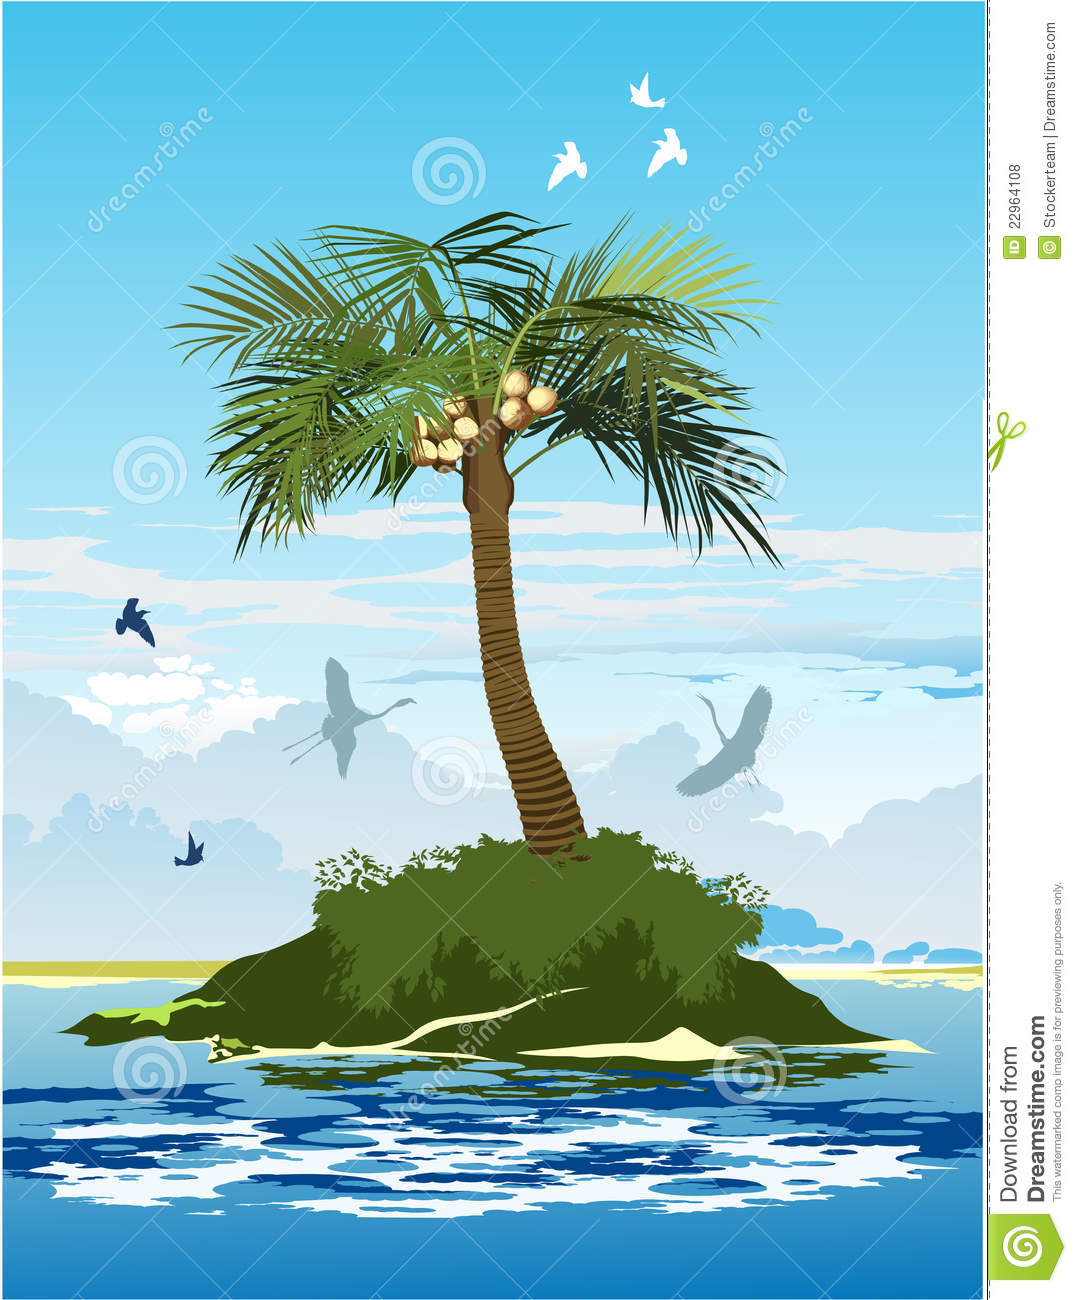 Palm Tree Island: Palm Tree On The Island Stock Vector. Illustration Of Palm